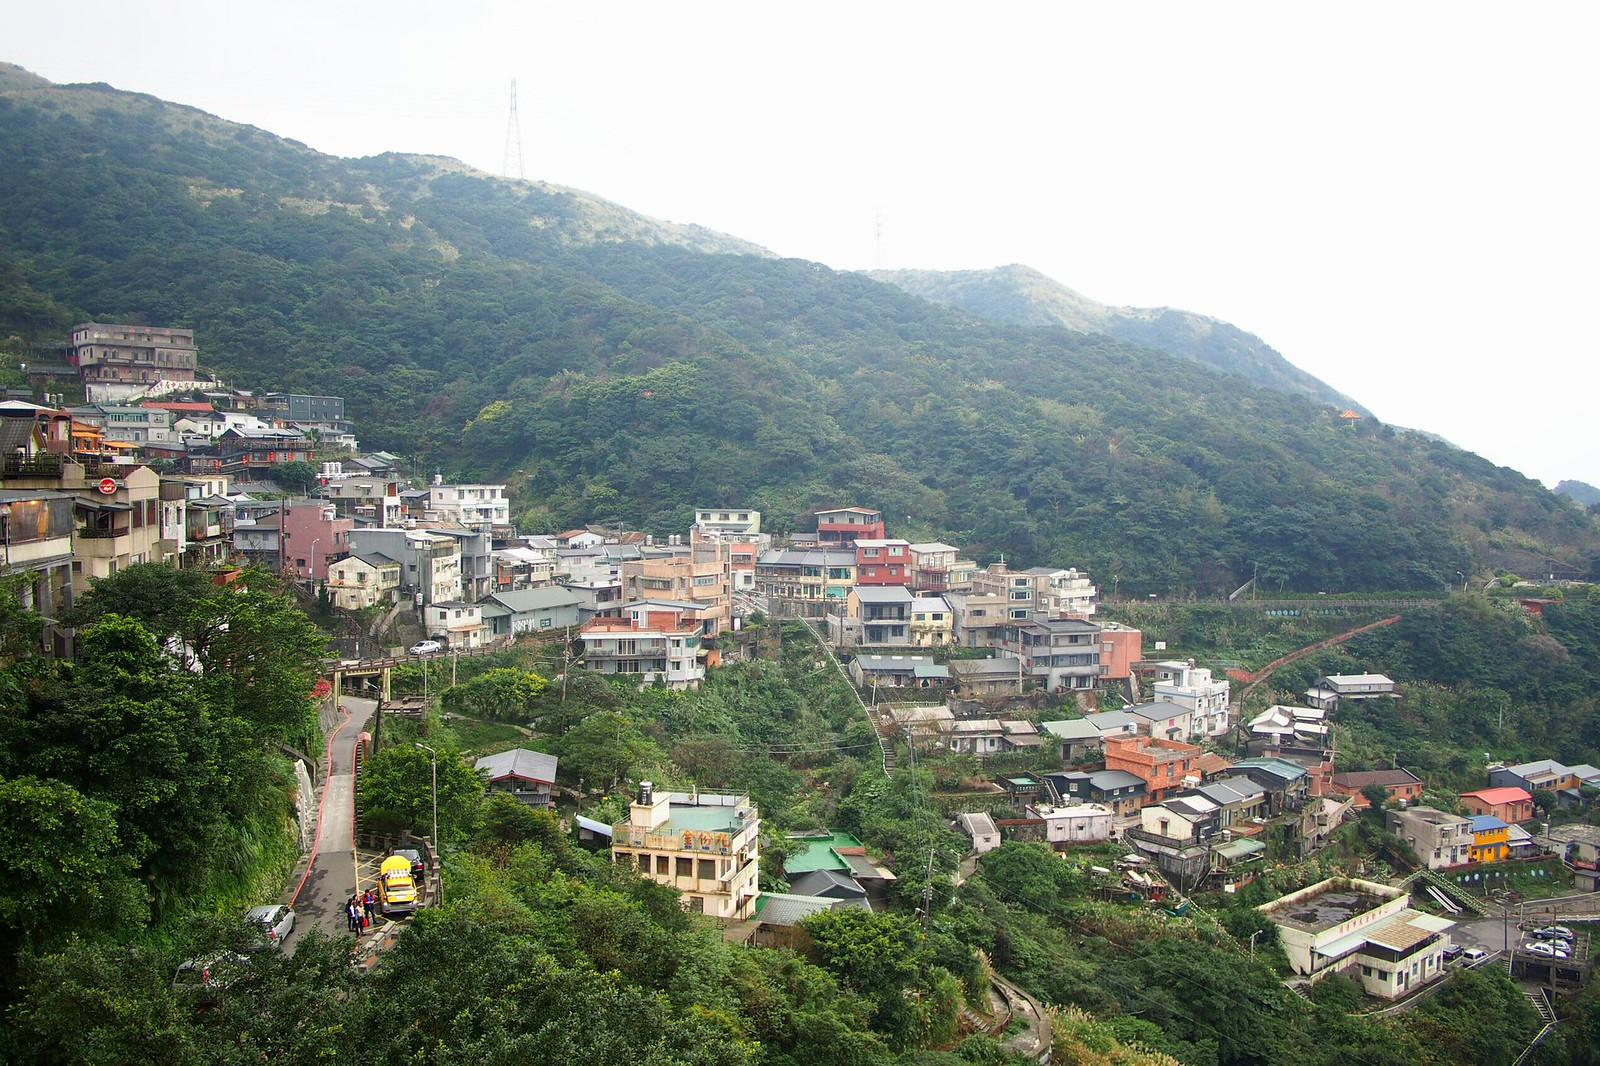 View of Jiufen from the viewpoint